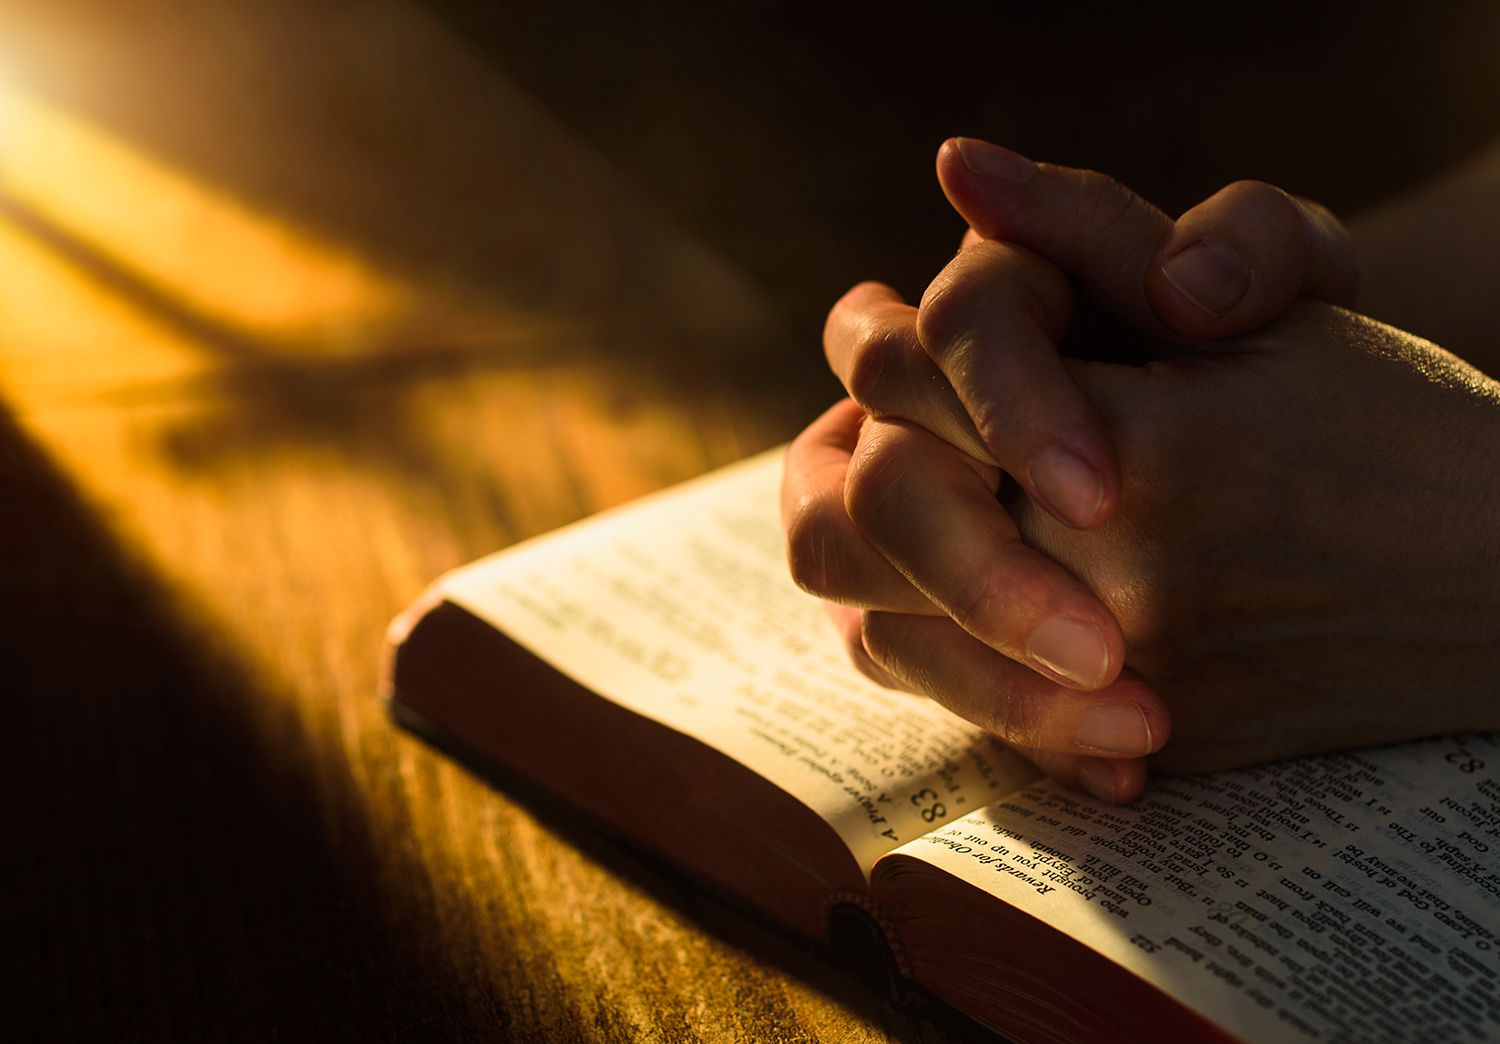 Close up of hands clasped on open Bible.